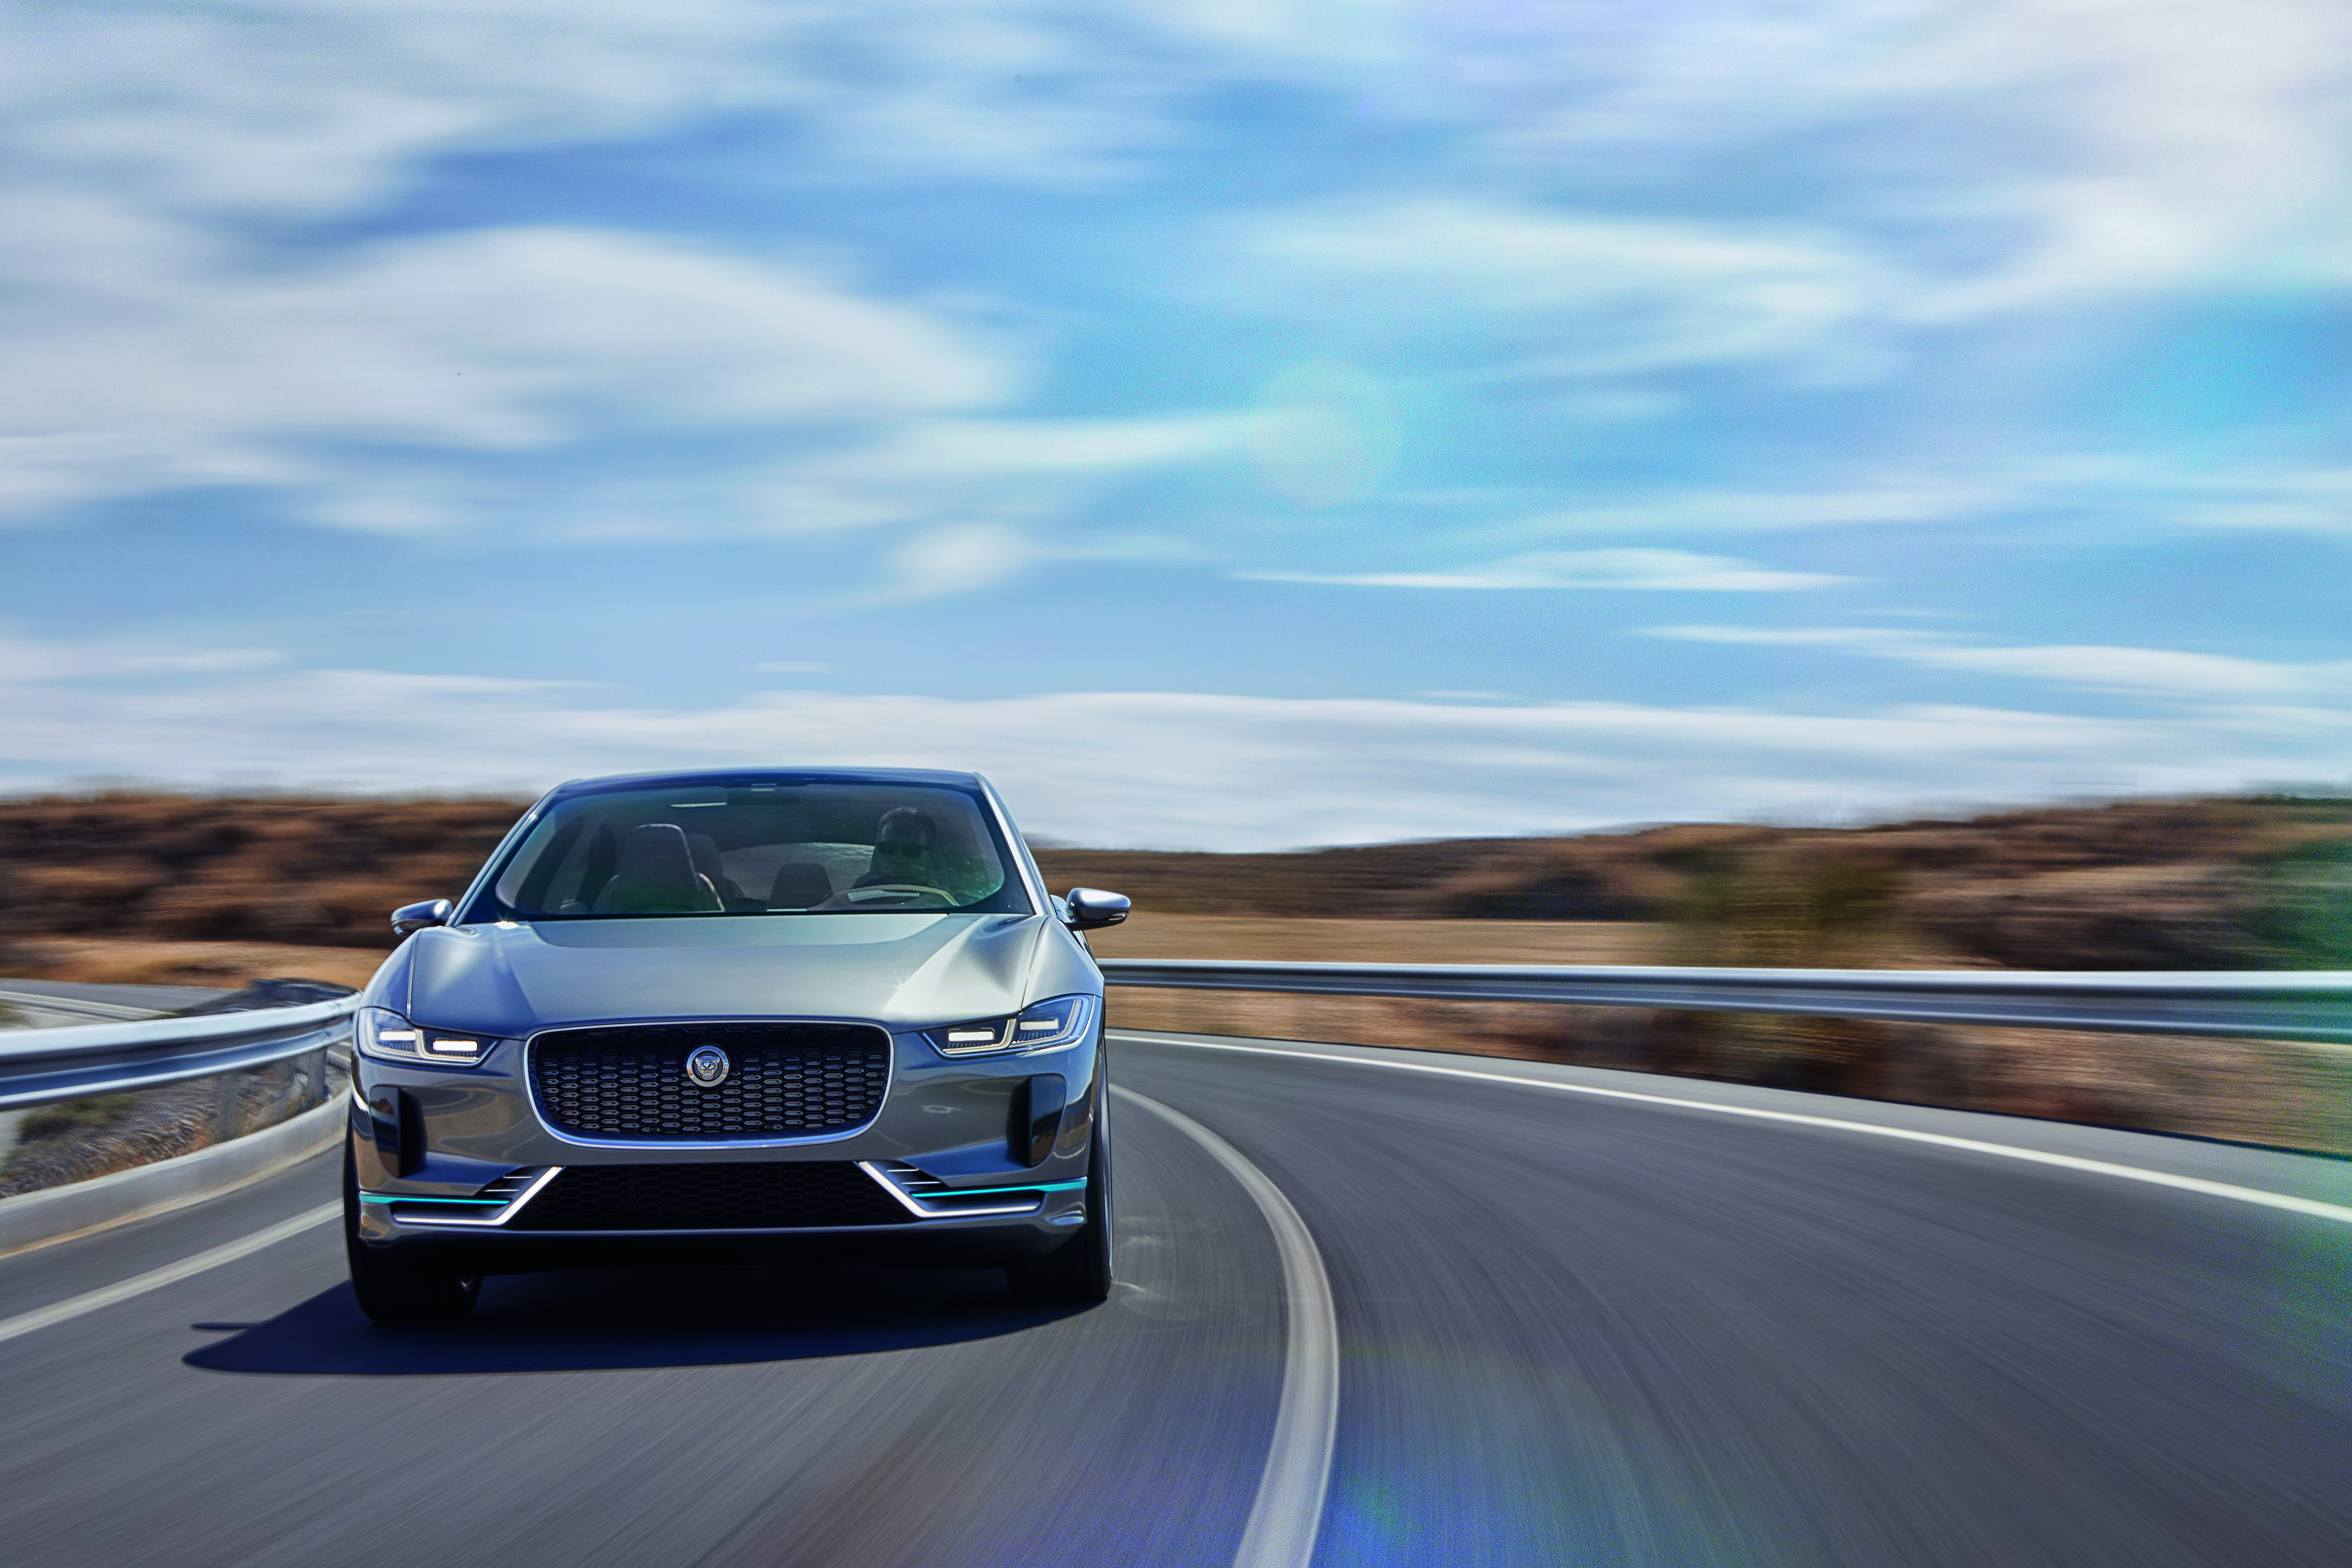 JAGUAR_I-PACE_CONCEPT_Location_11